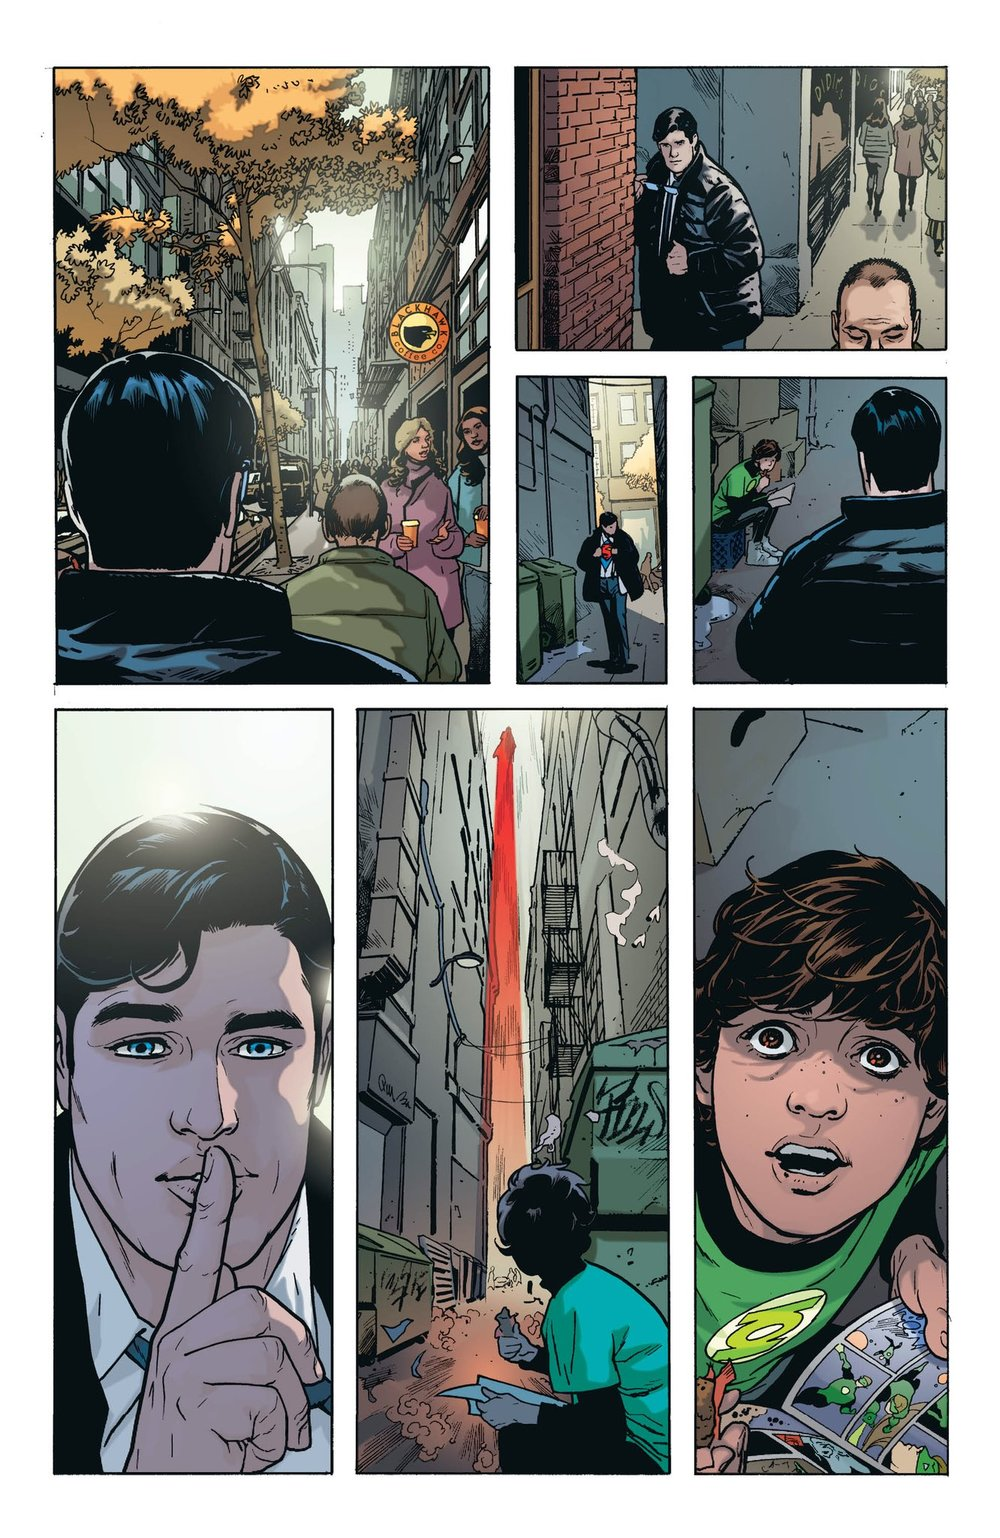 This gem by Ryan Sook and Brad Anderson from  Action Comics #1006  is quite possibly the comic book page of the year.